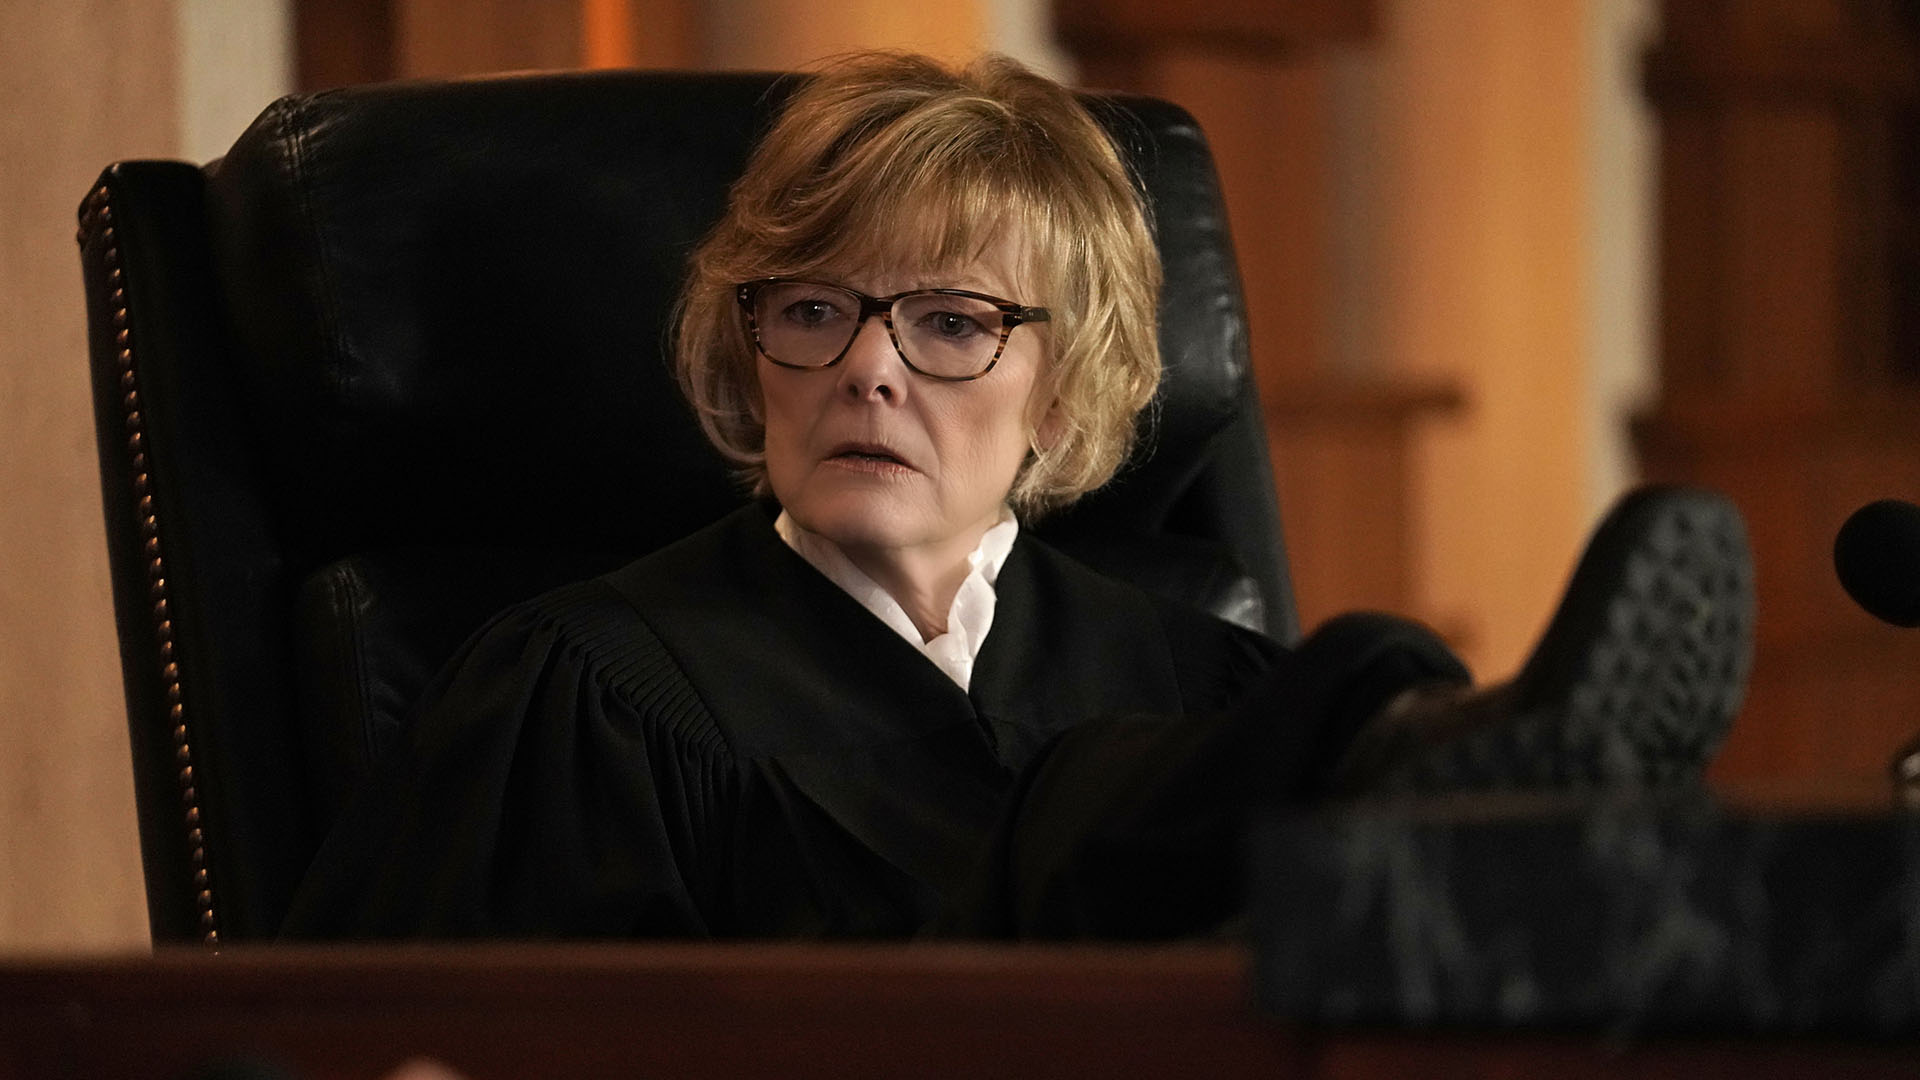 Jane Curtin as Judge Pamela Farley